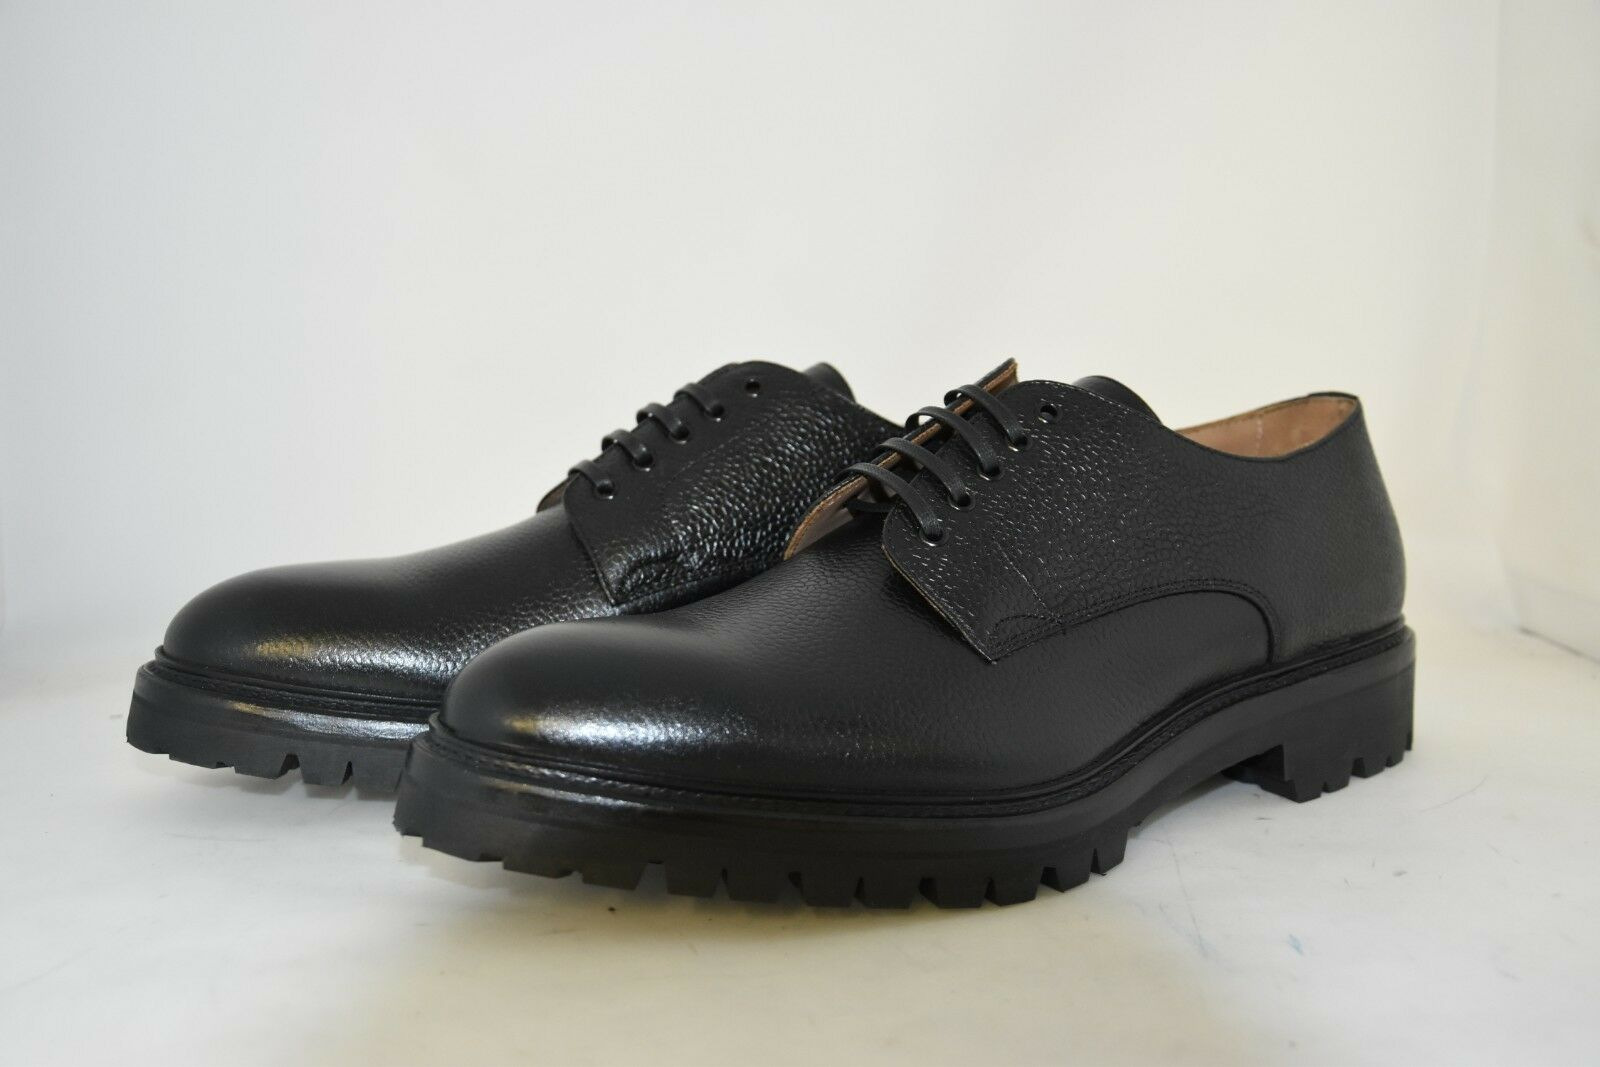 MAN-9eu-10us-DERBY-BLACK SCOTCH GRAIN- VITELLO black-RUBBER SOLE -SUOLA GOMMA